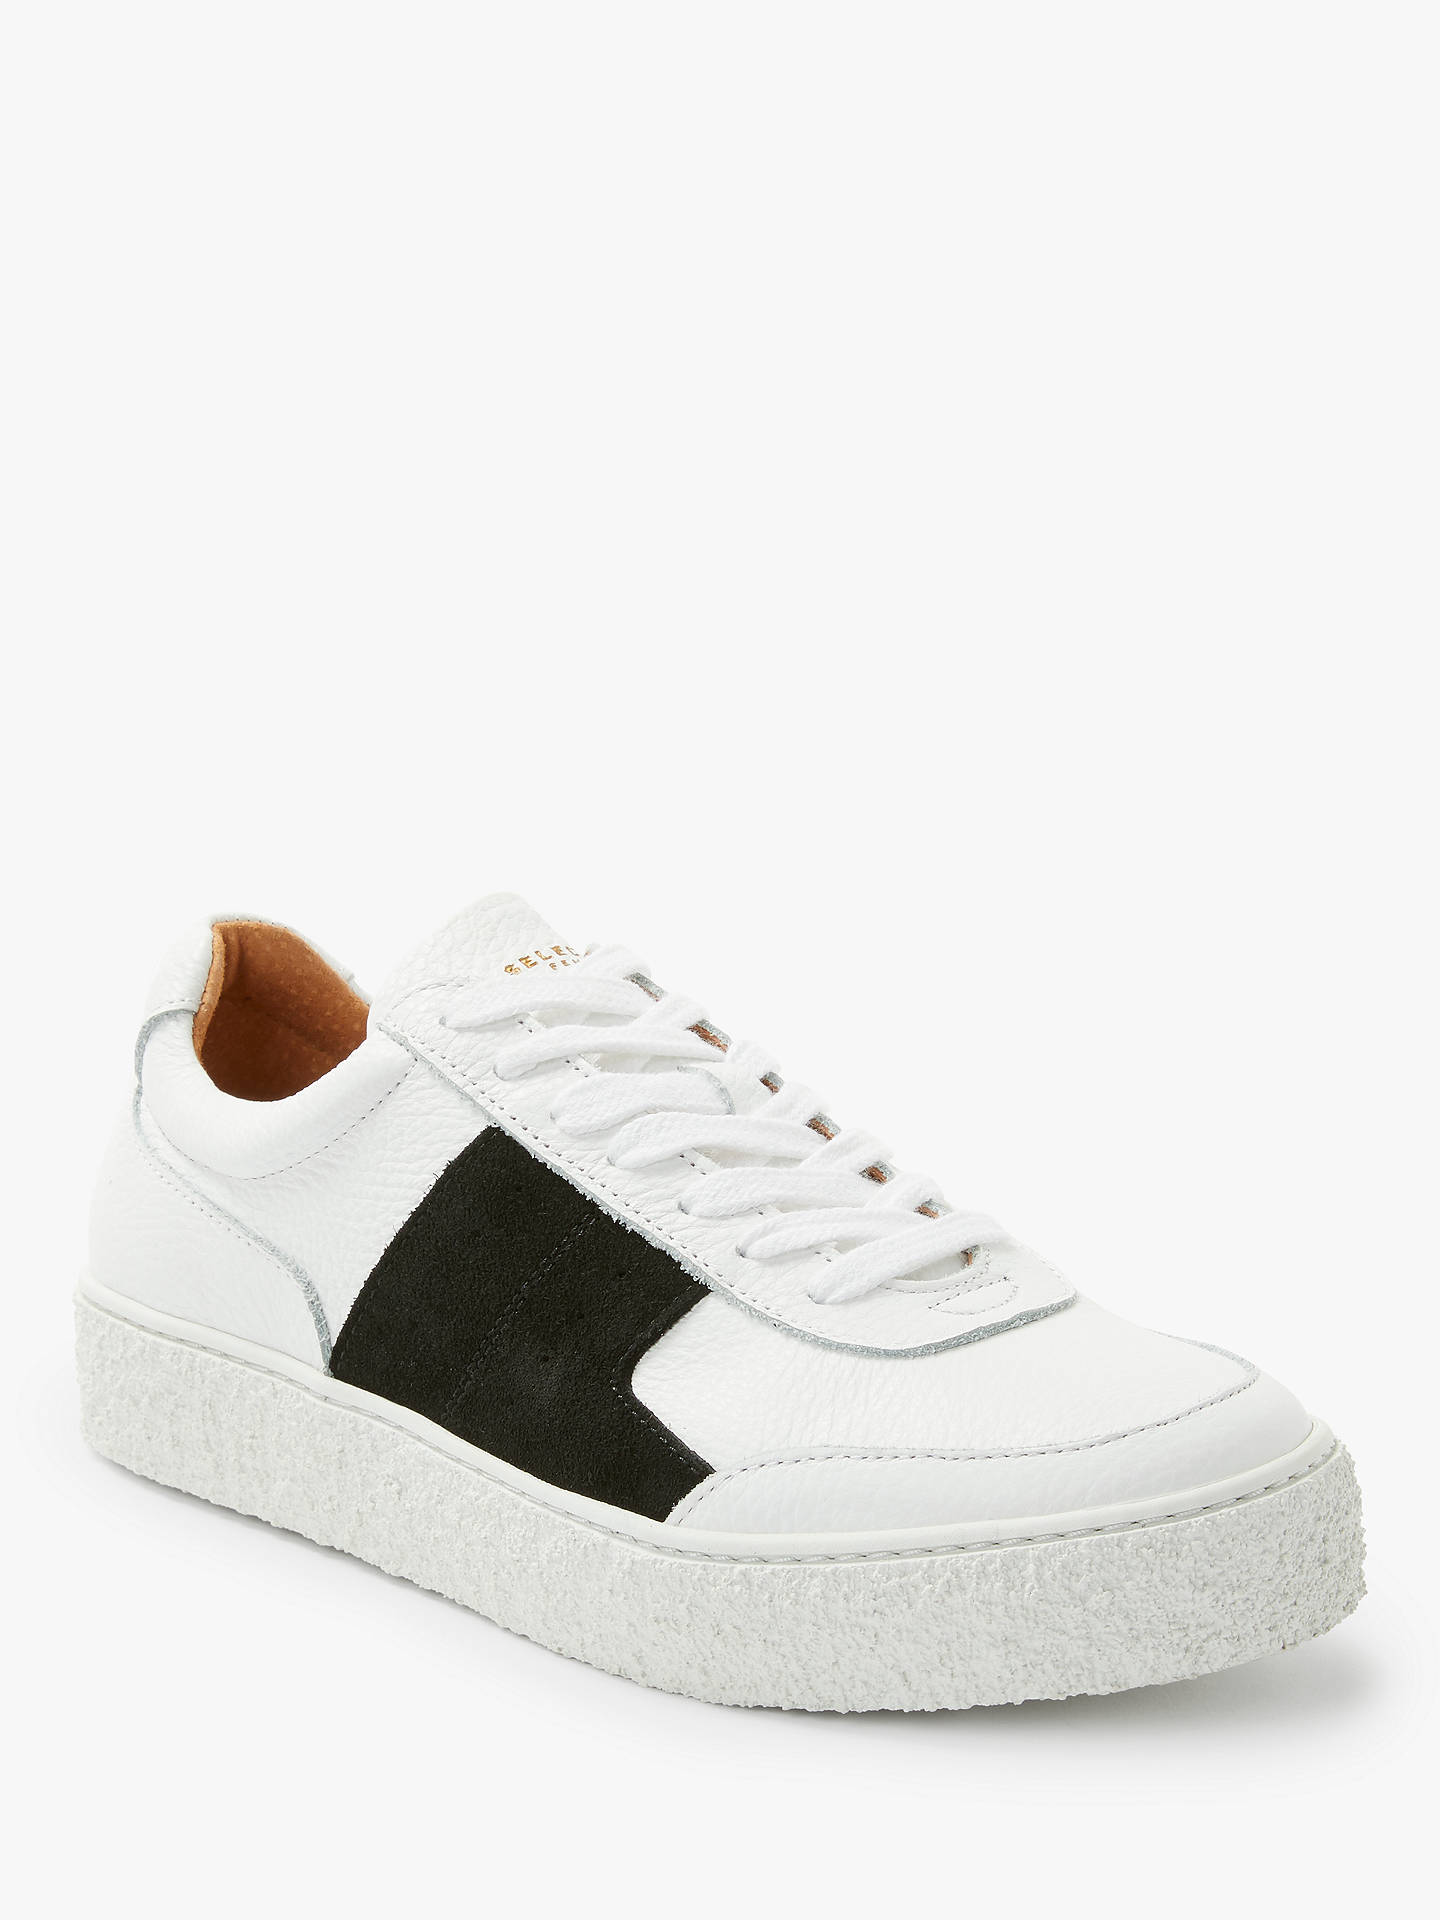 BuySelected Femme Slfdina Leather Trainers, White/Black, 4 Online at johnlewis.com